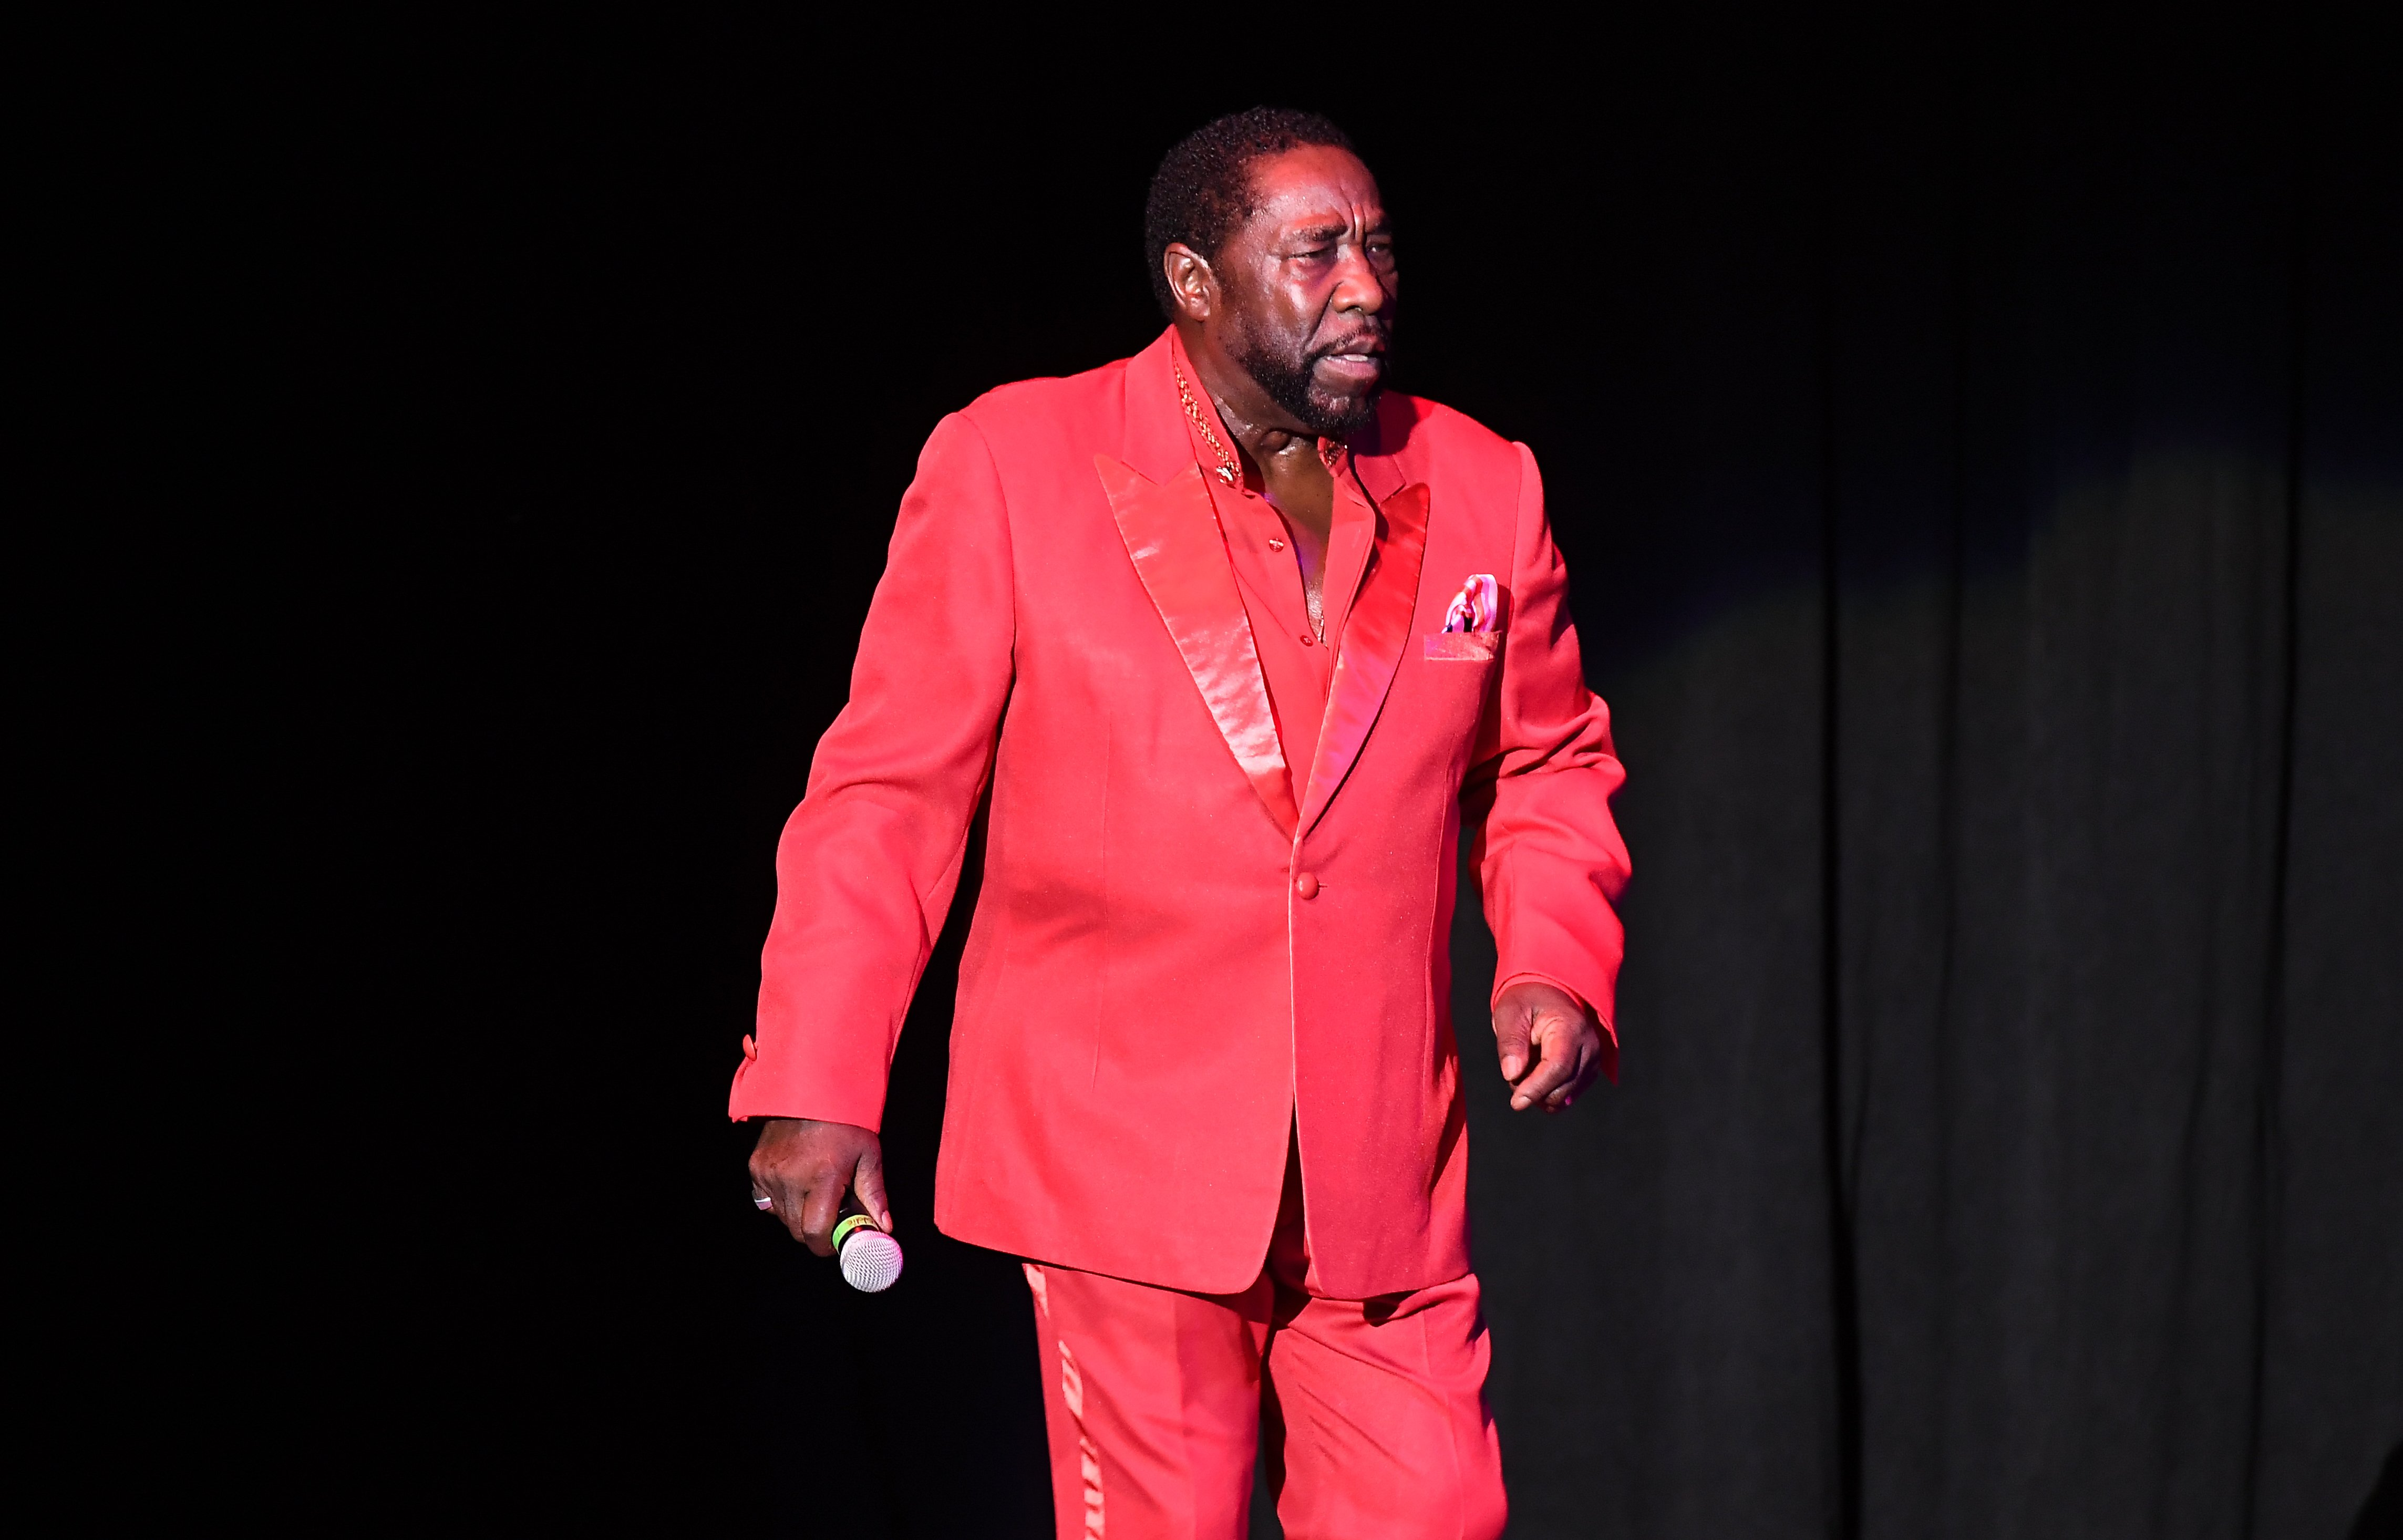 Eddie Levert of The O'Jays performs in concert at State Bank Amphitheatre at Chastain Park on August 10, 2018 in Atlanta, Georgia. | Photo: GettyImages